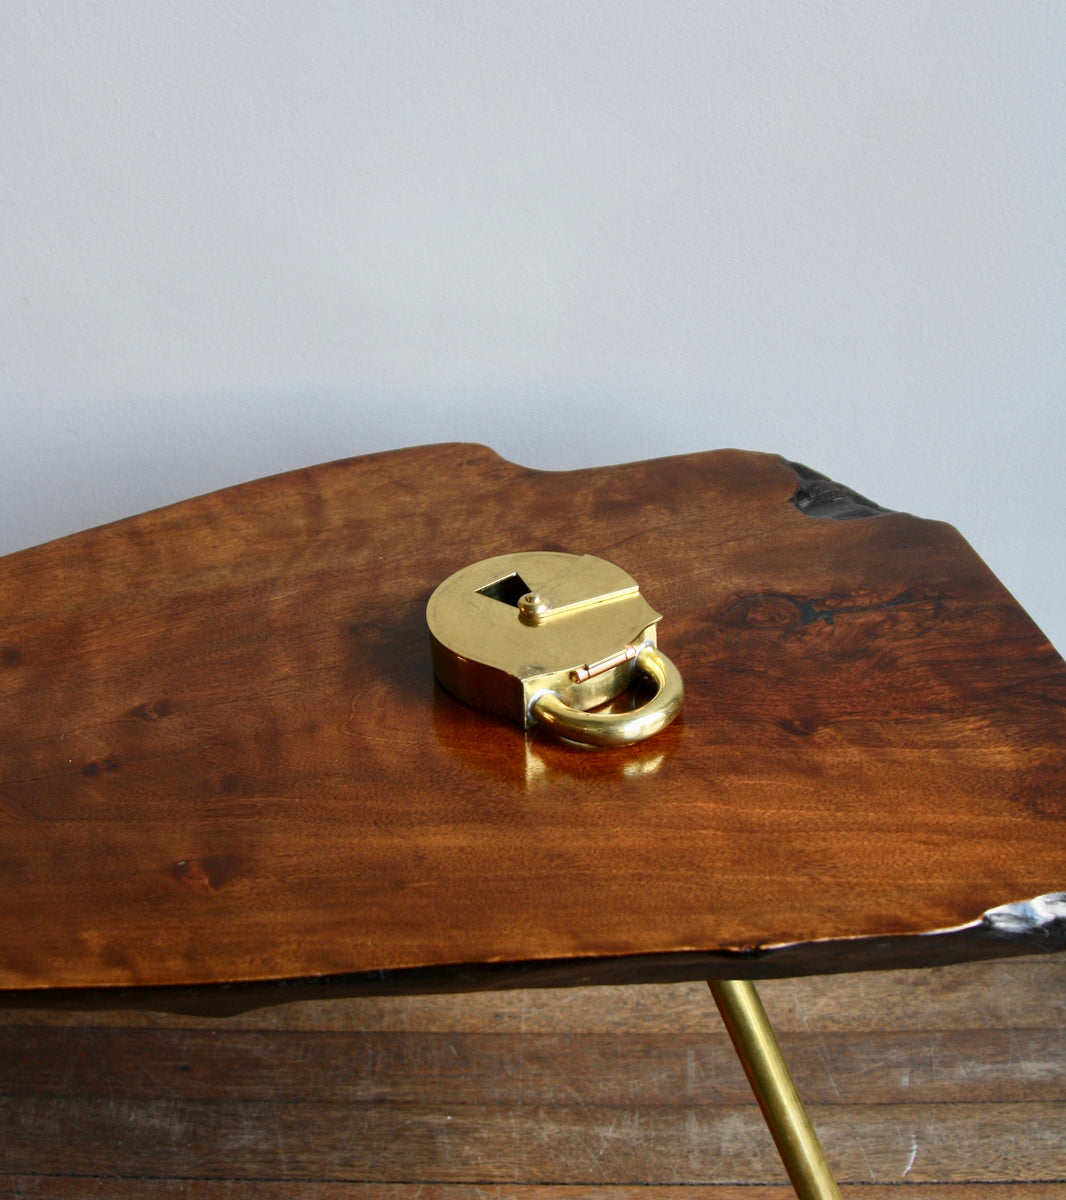 Model #3317 <br> Padlock Trinket Box/Ashtray <br> by Carl Auböck II